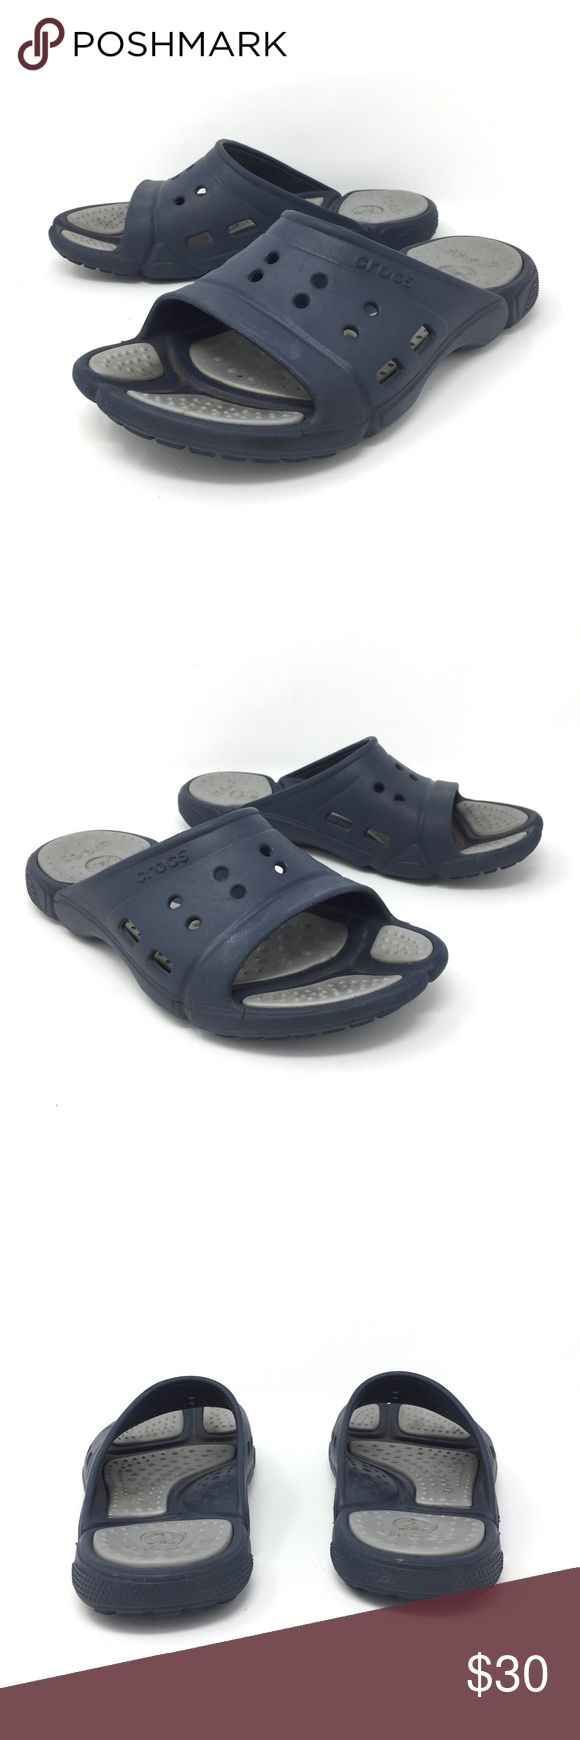 Crocs Slide Sandals Sz 9 women's blue silver Crocs Slide Sandals Navy Blue & Silver Unisex Sz 7 Men's 9 Women's Garden Beach  Size: Men's Size 7 Women's Size 9 Color: Navy Blue and Silver  In good preowned condition with no known flaws and light overall wear. CROCS Shoes Sandals